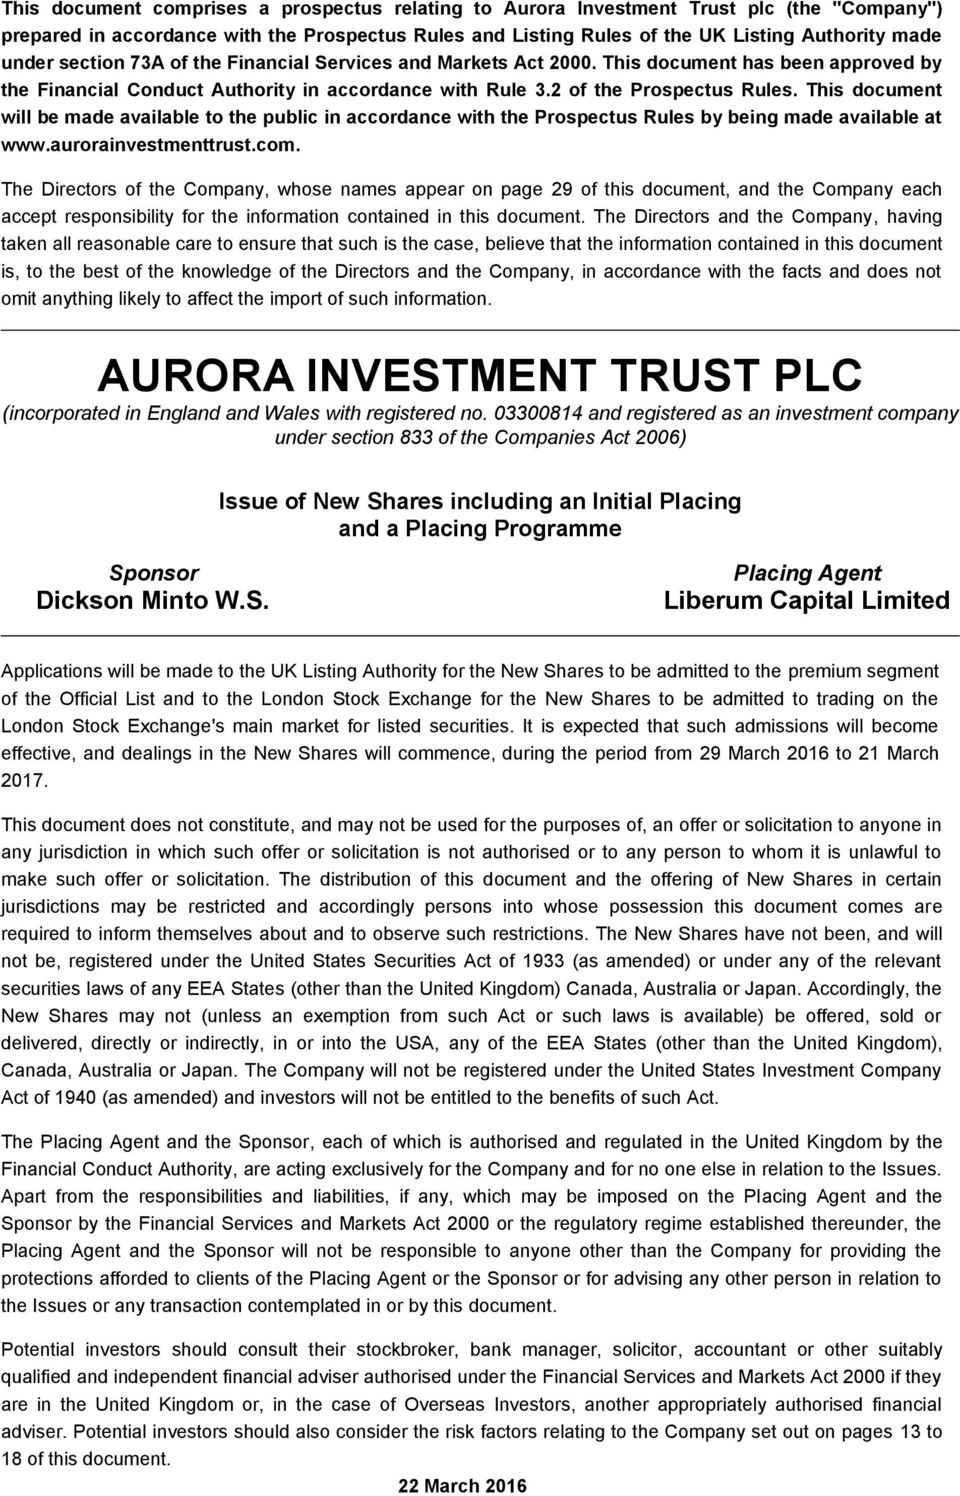 This document will be made available to the public in accordance with the Prospectus Rules by being made available at www.aurorainvestmenttrust.com.